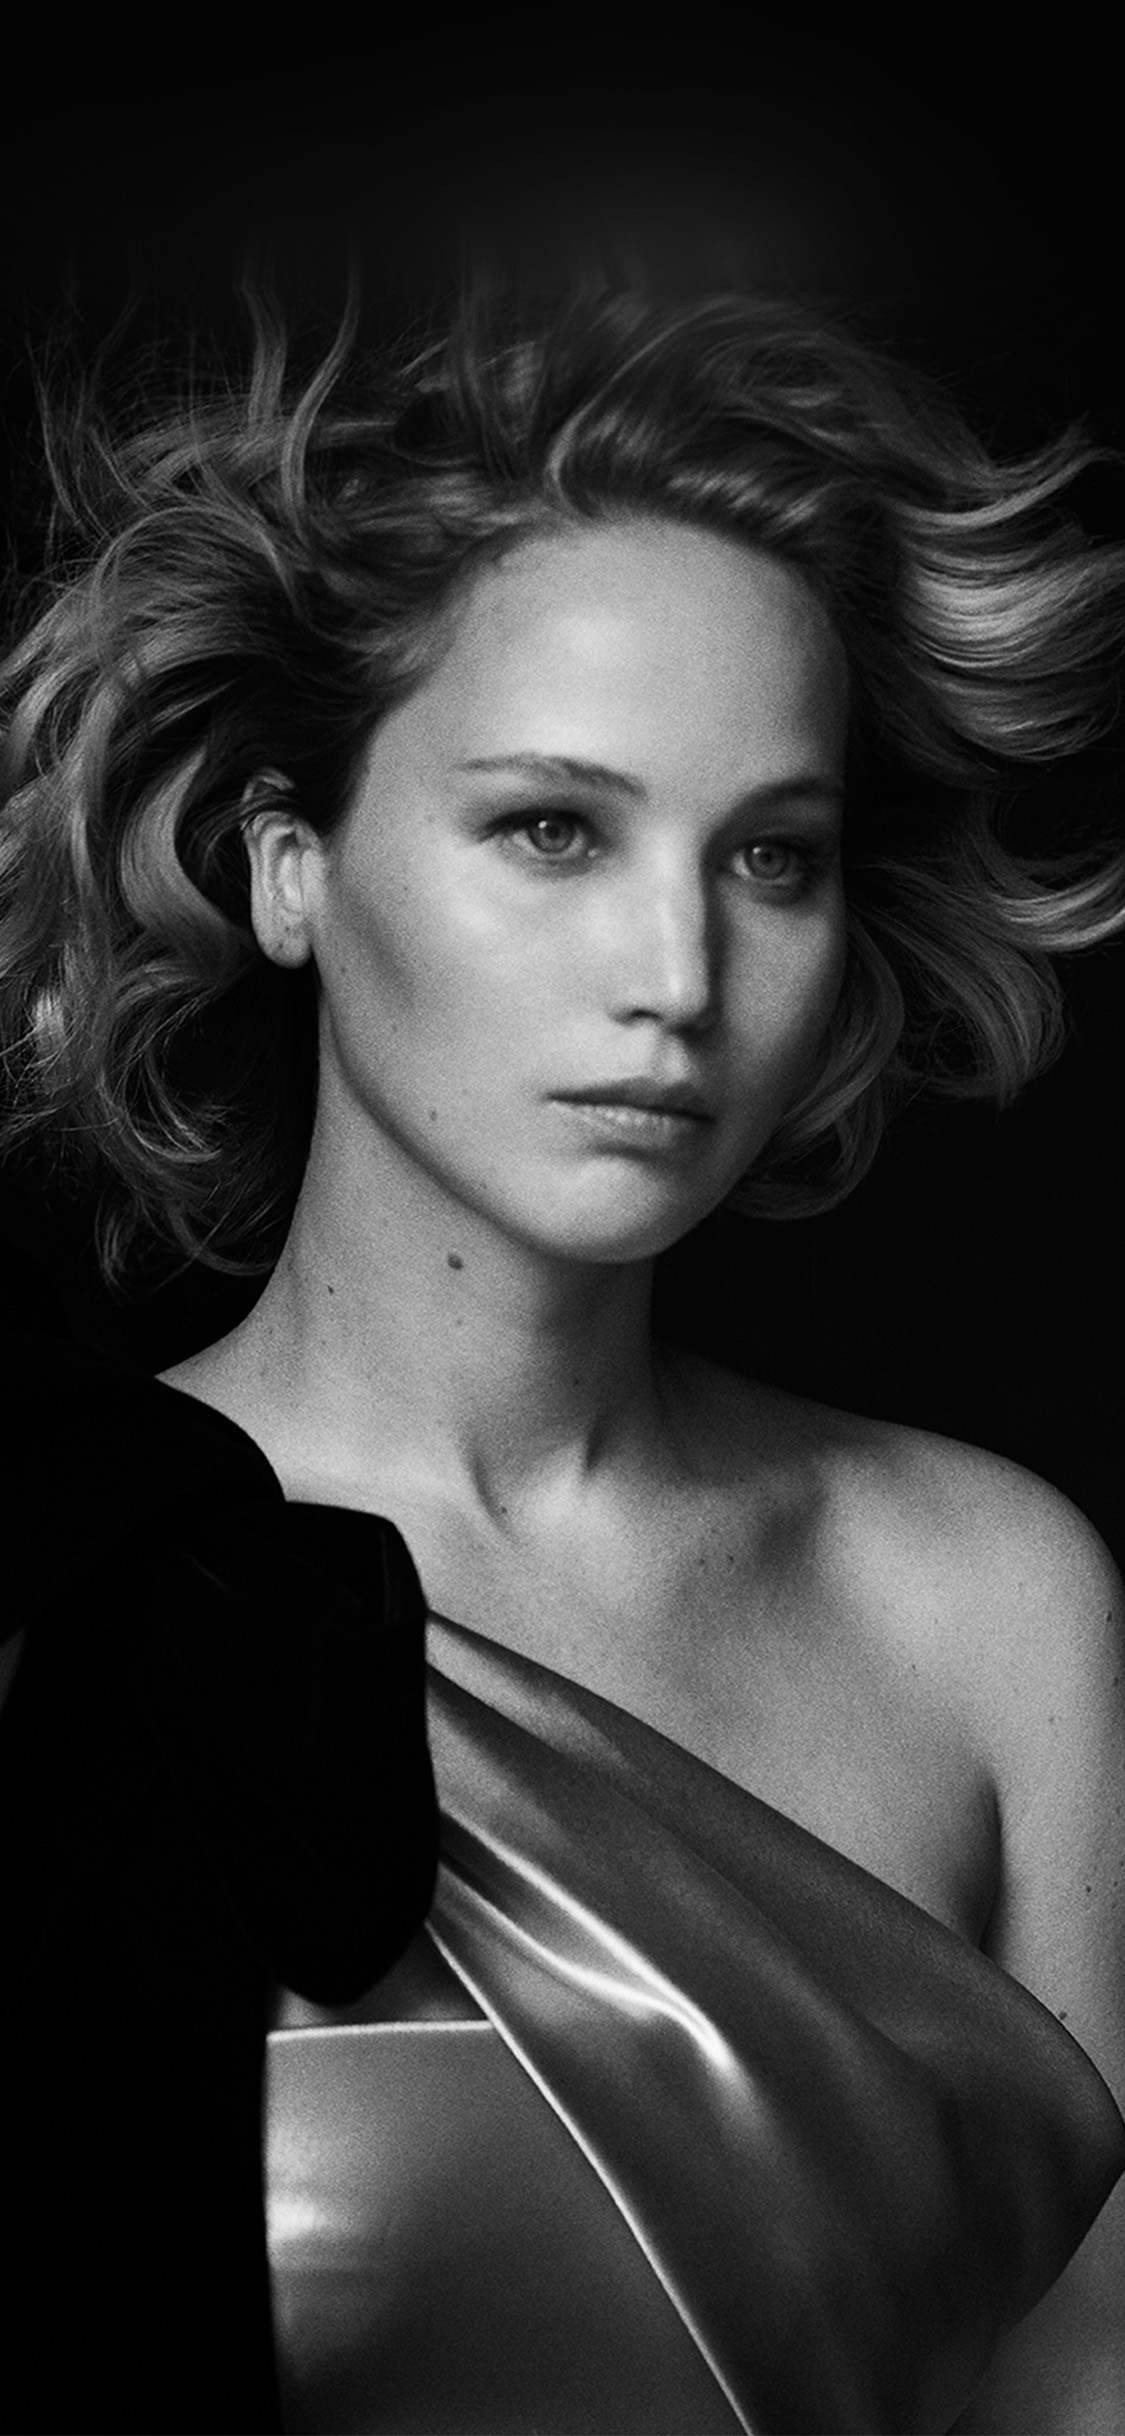 iPhonexpapers.com-Apple-iPhone-wallpaper-hp82-girl-bw-celebrity-film-actress